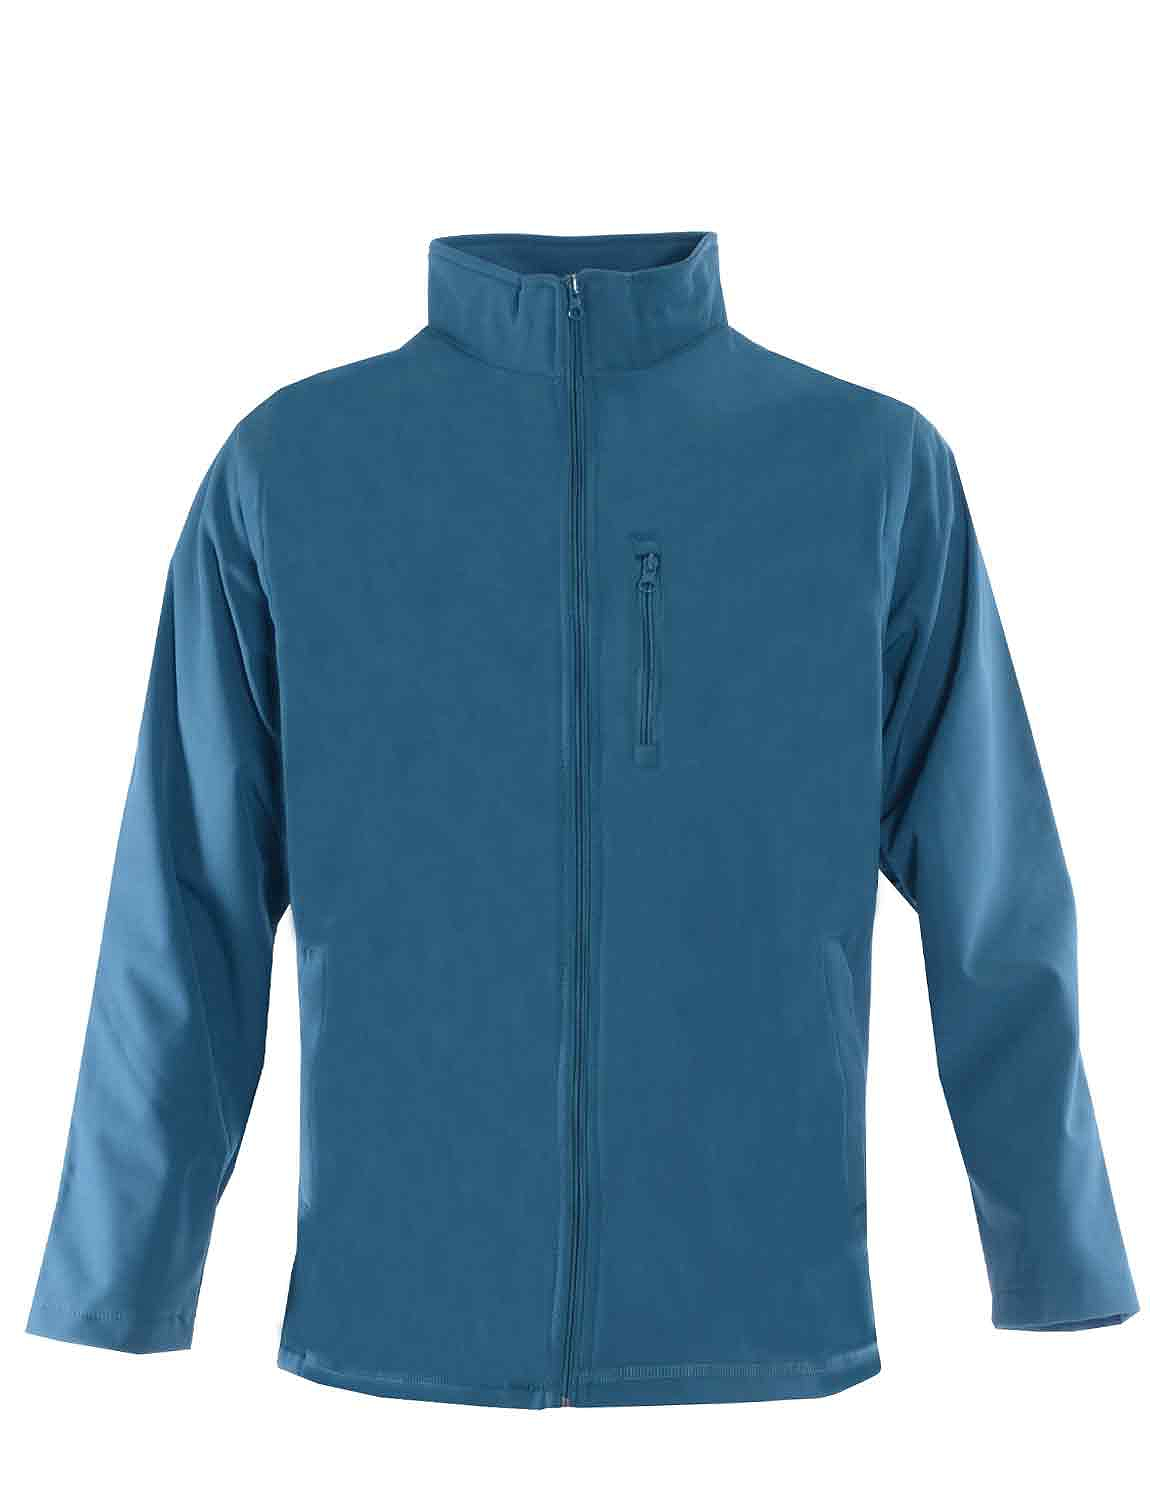 Bar Harbour Showerproof Fleece Lined Soft Shell Jacket - Blue